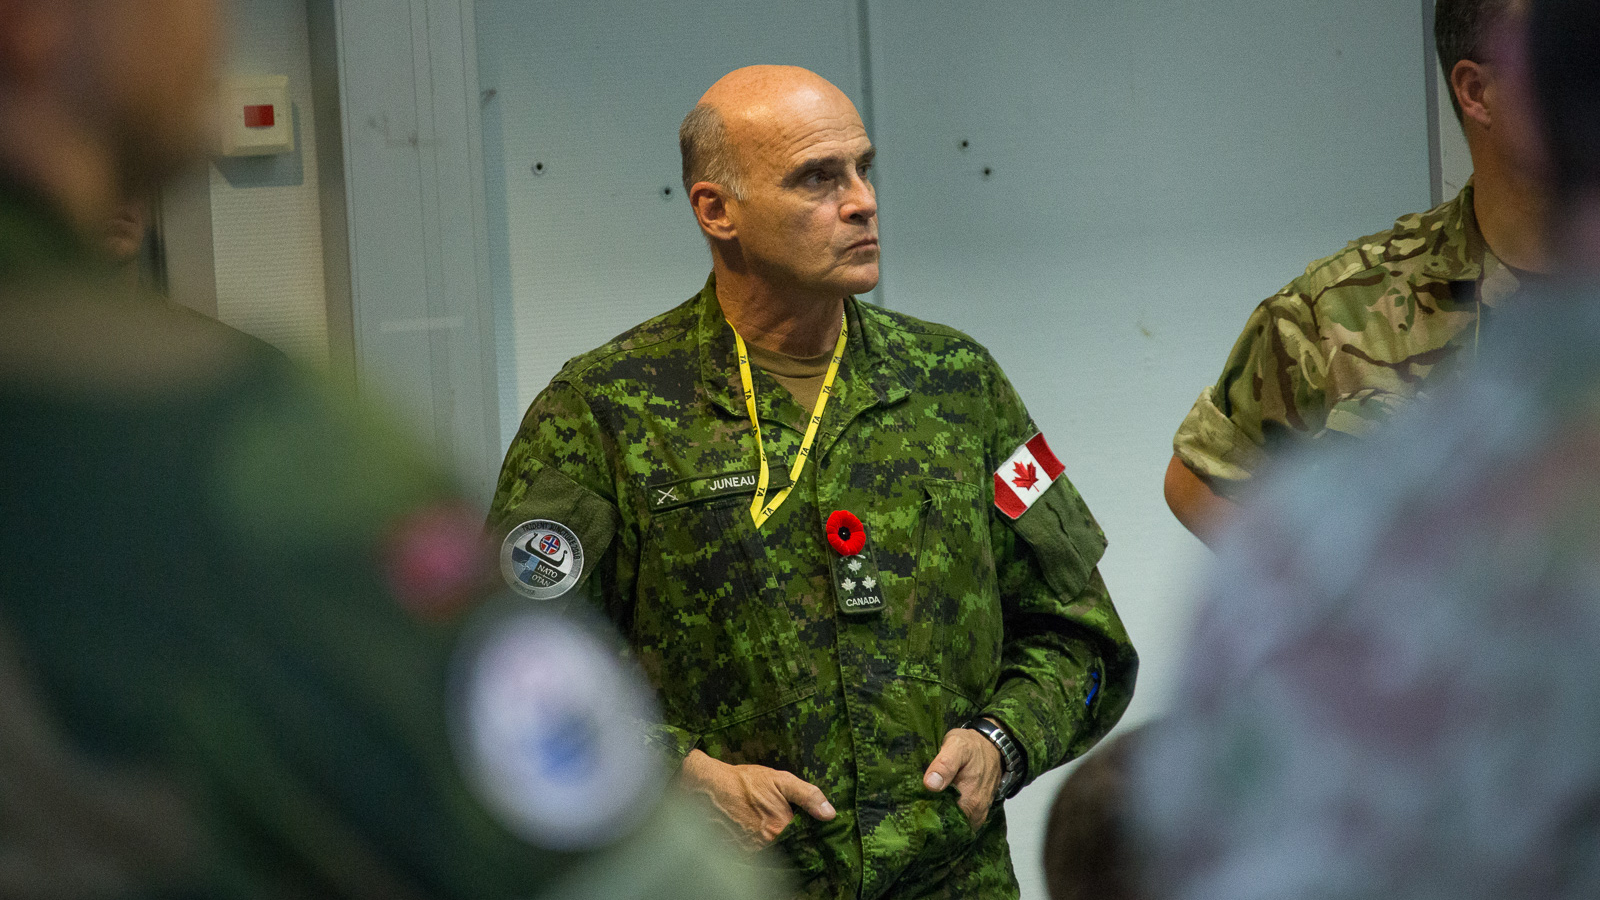 Interview with Lieutenant General Christian Juneau on TRIDENT JUNCTURE 2018 Command Post Exercise